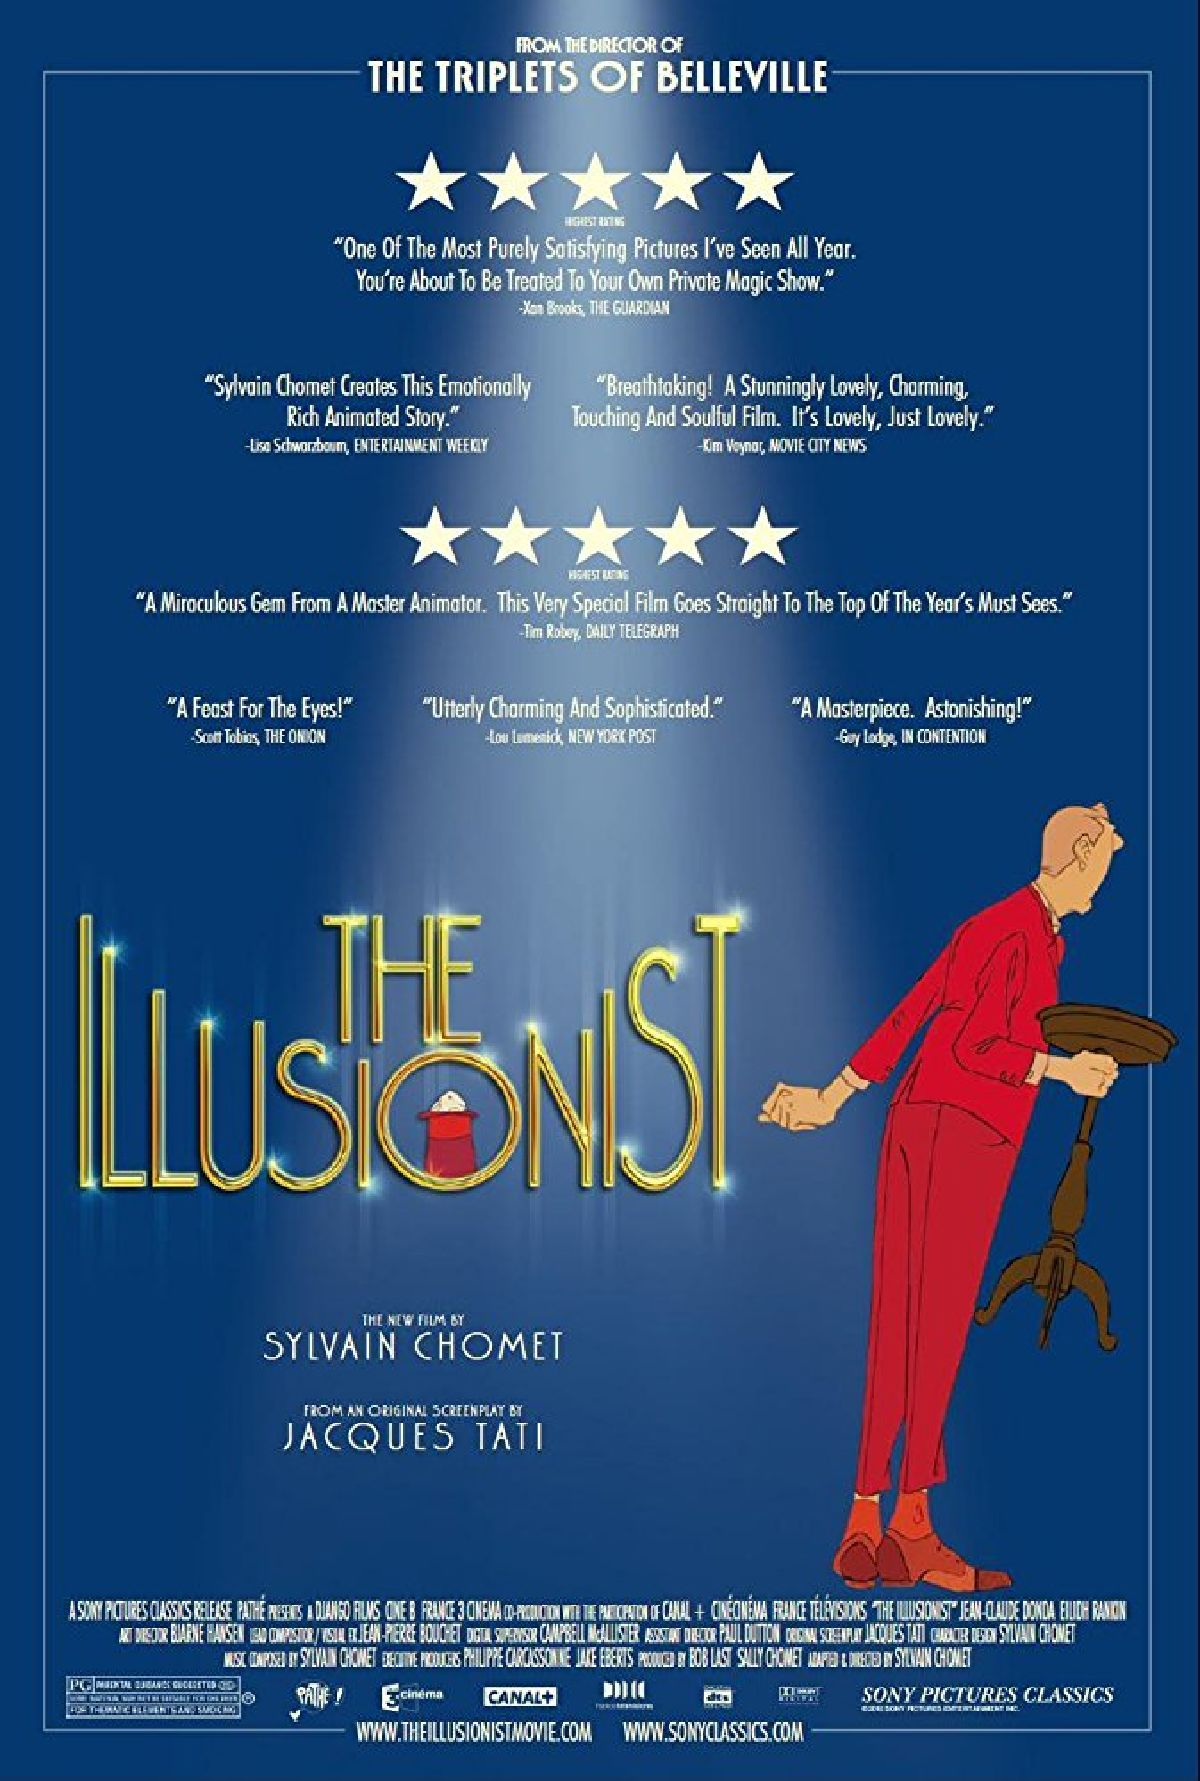 'The Illusionist' movie poster